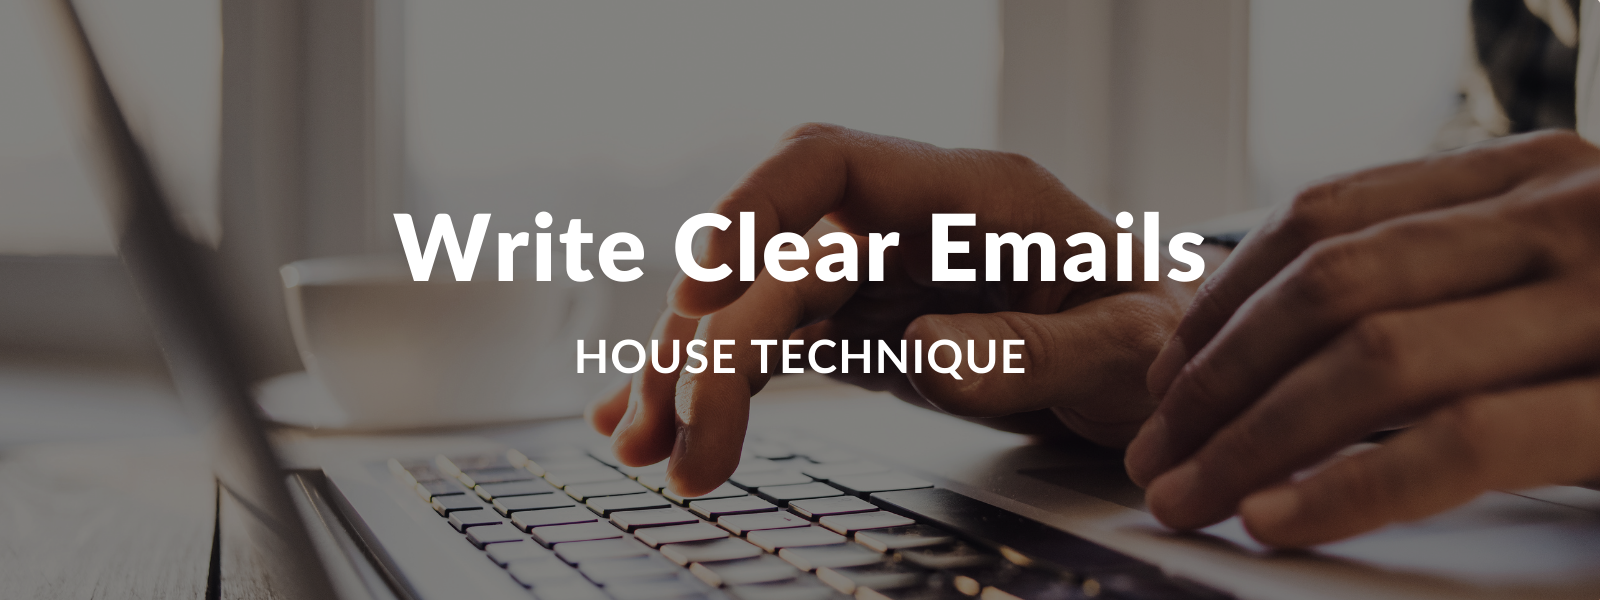 How To Write Clear Emails | Concise Writing and the House Technique